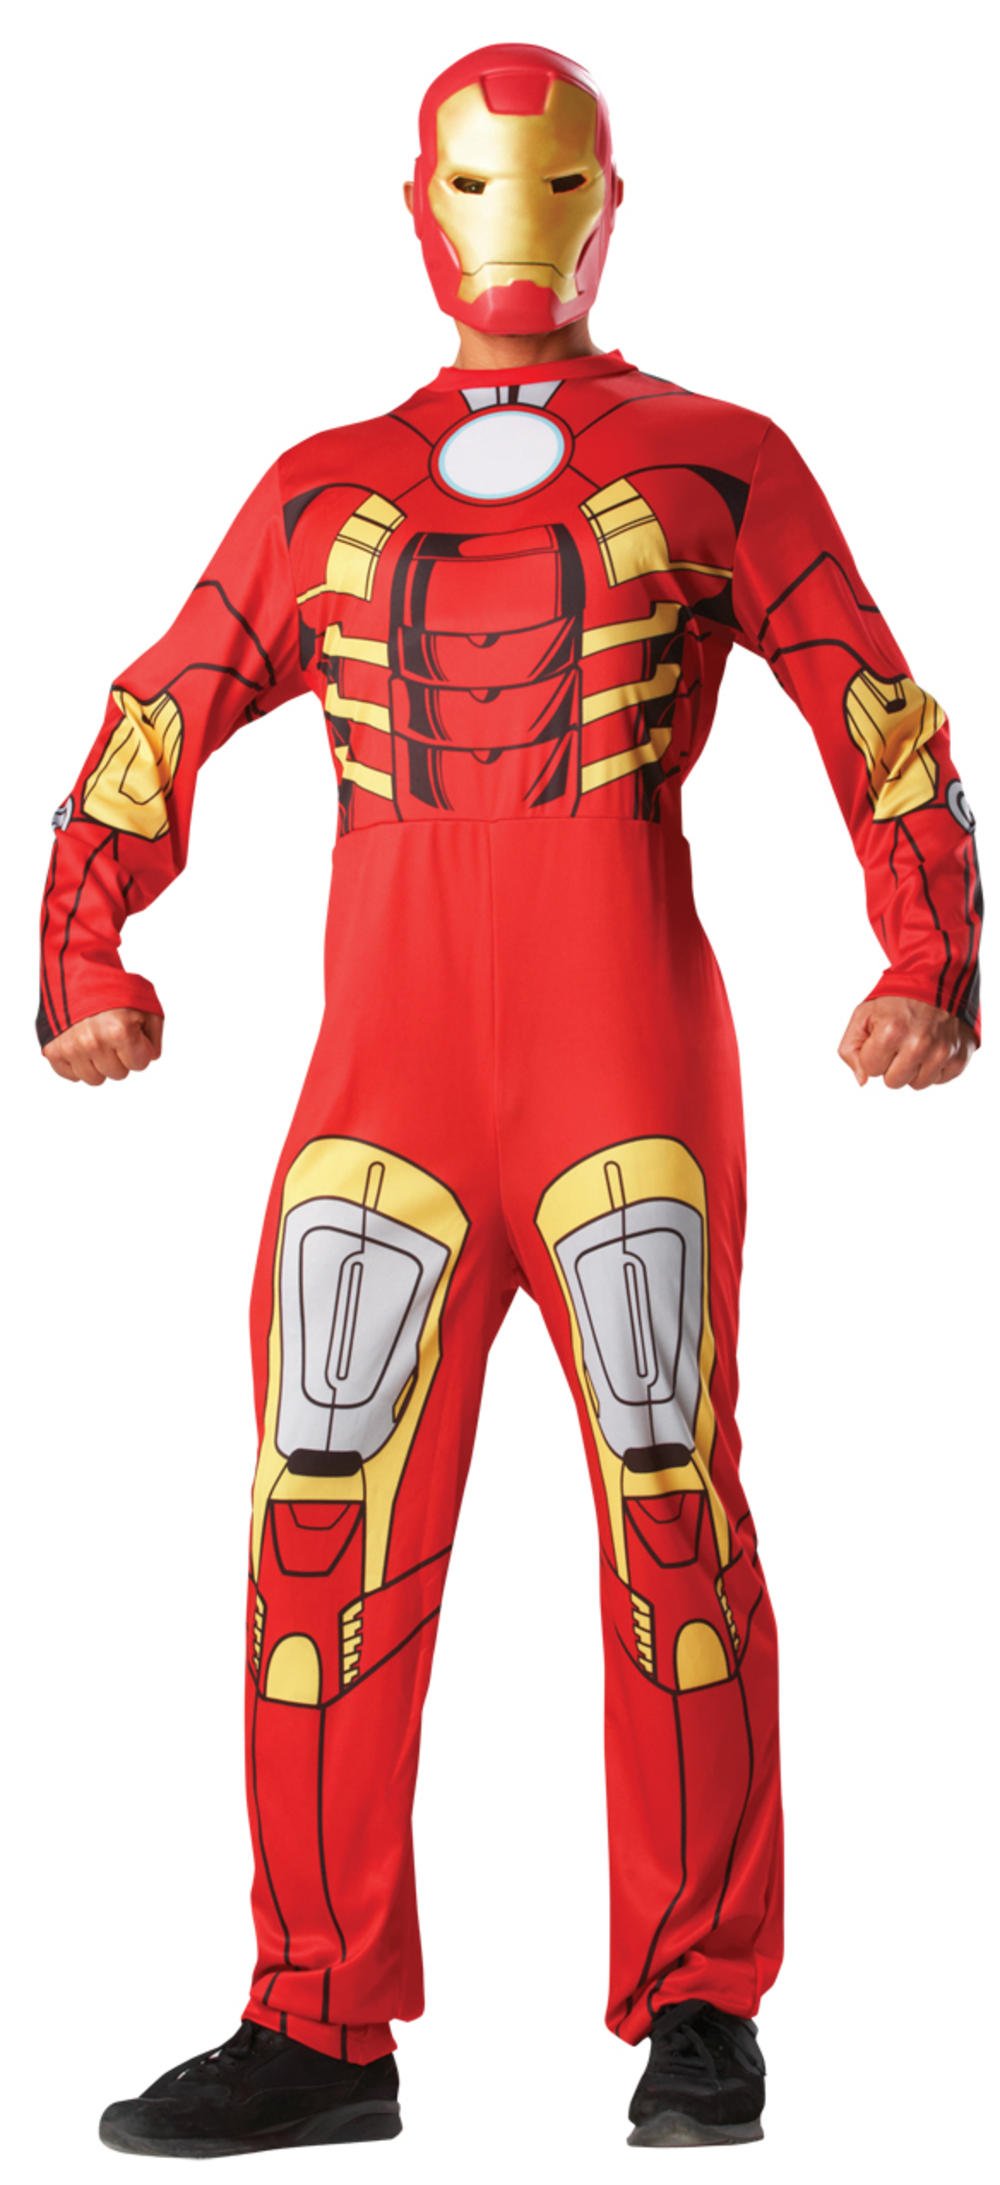 Iron Man + Mask Mens Avengers Superhero Movie Character Adults Costume Outfit